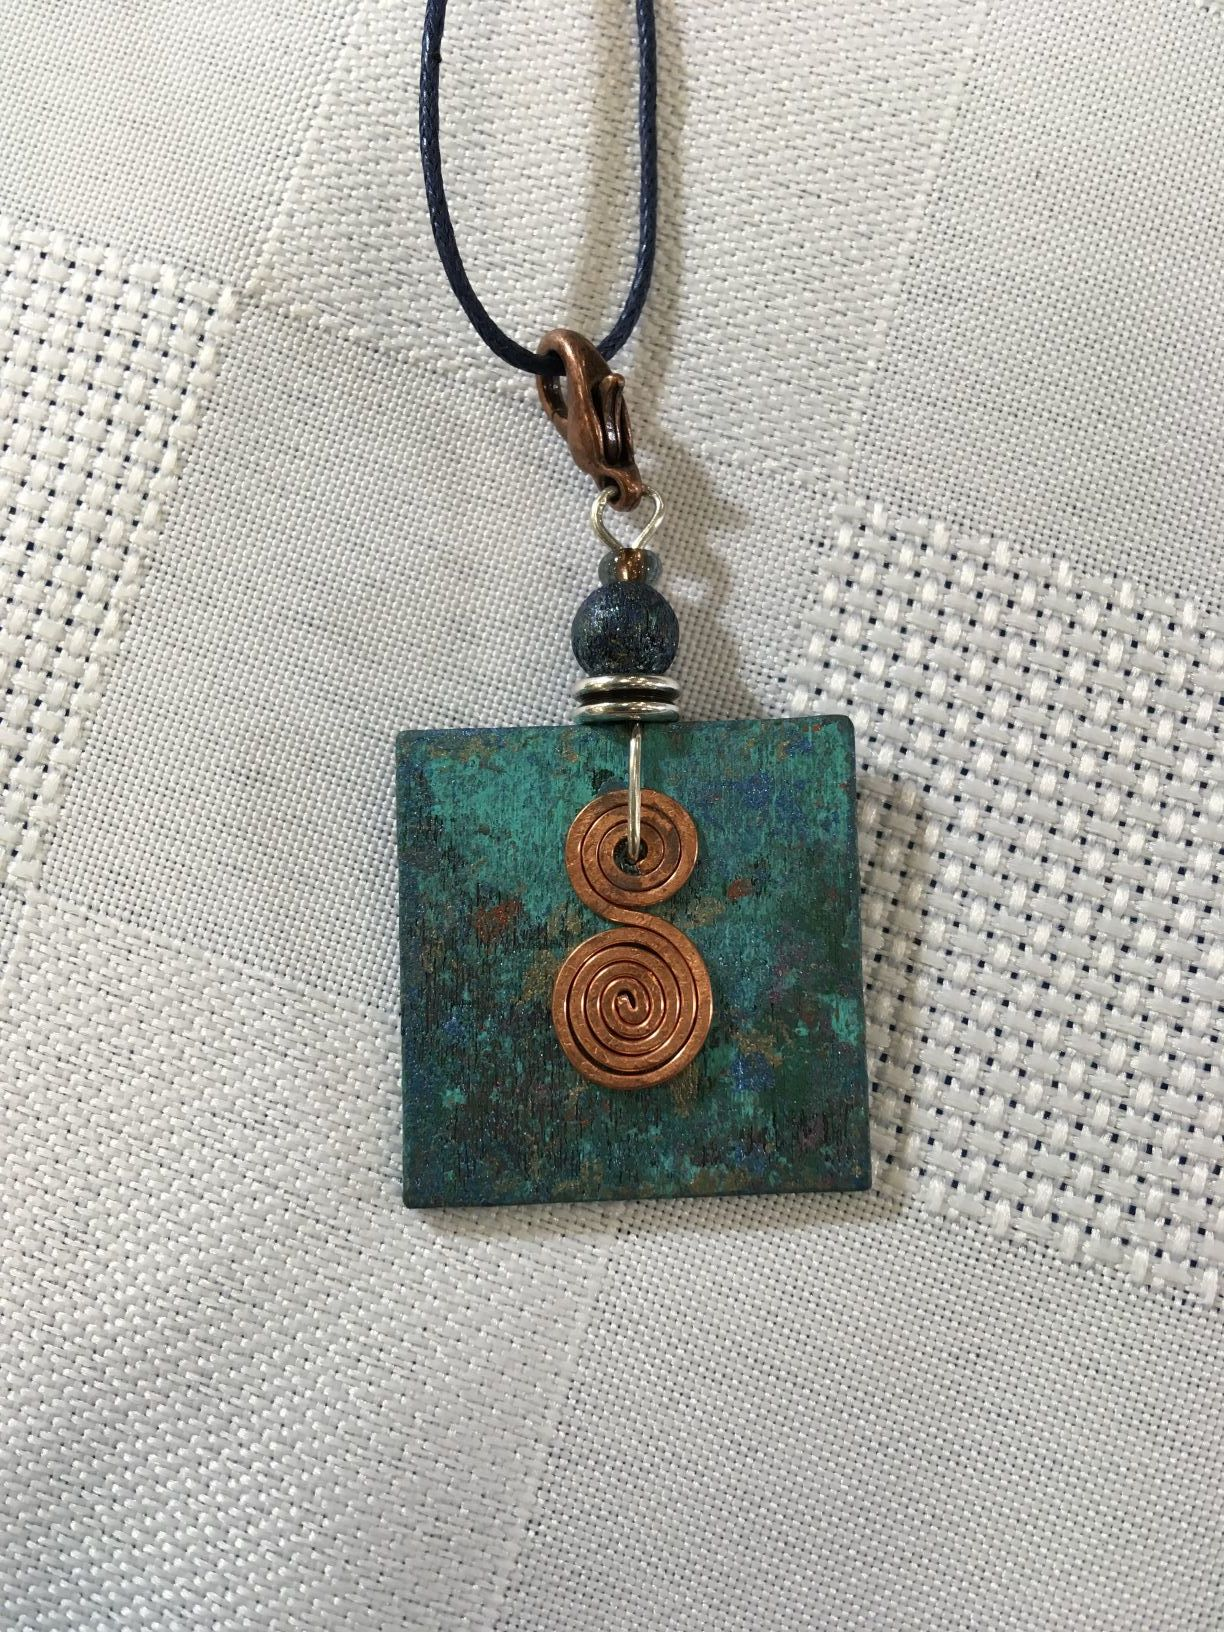 Rachel Joy VanRooyen, #3, square turquoise coloured wooden pendant with hammered copper accent.JPG